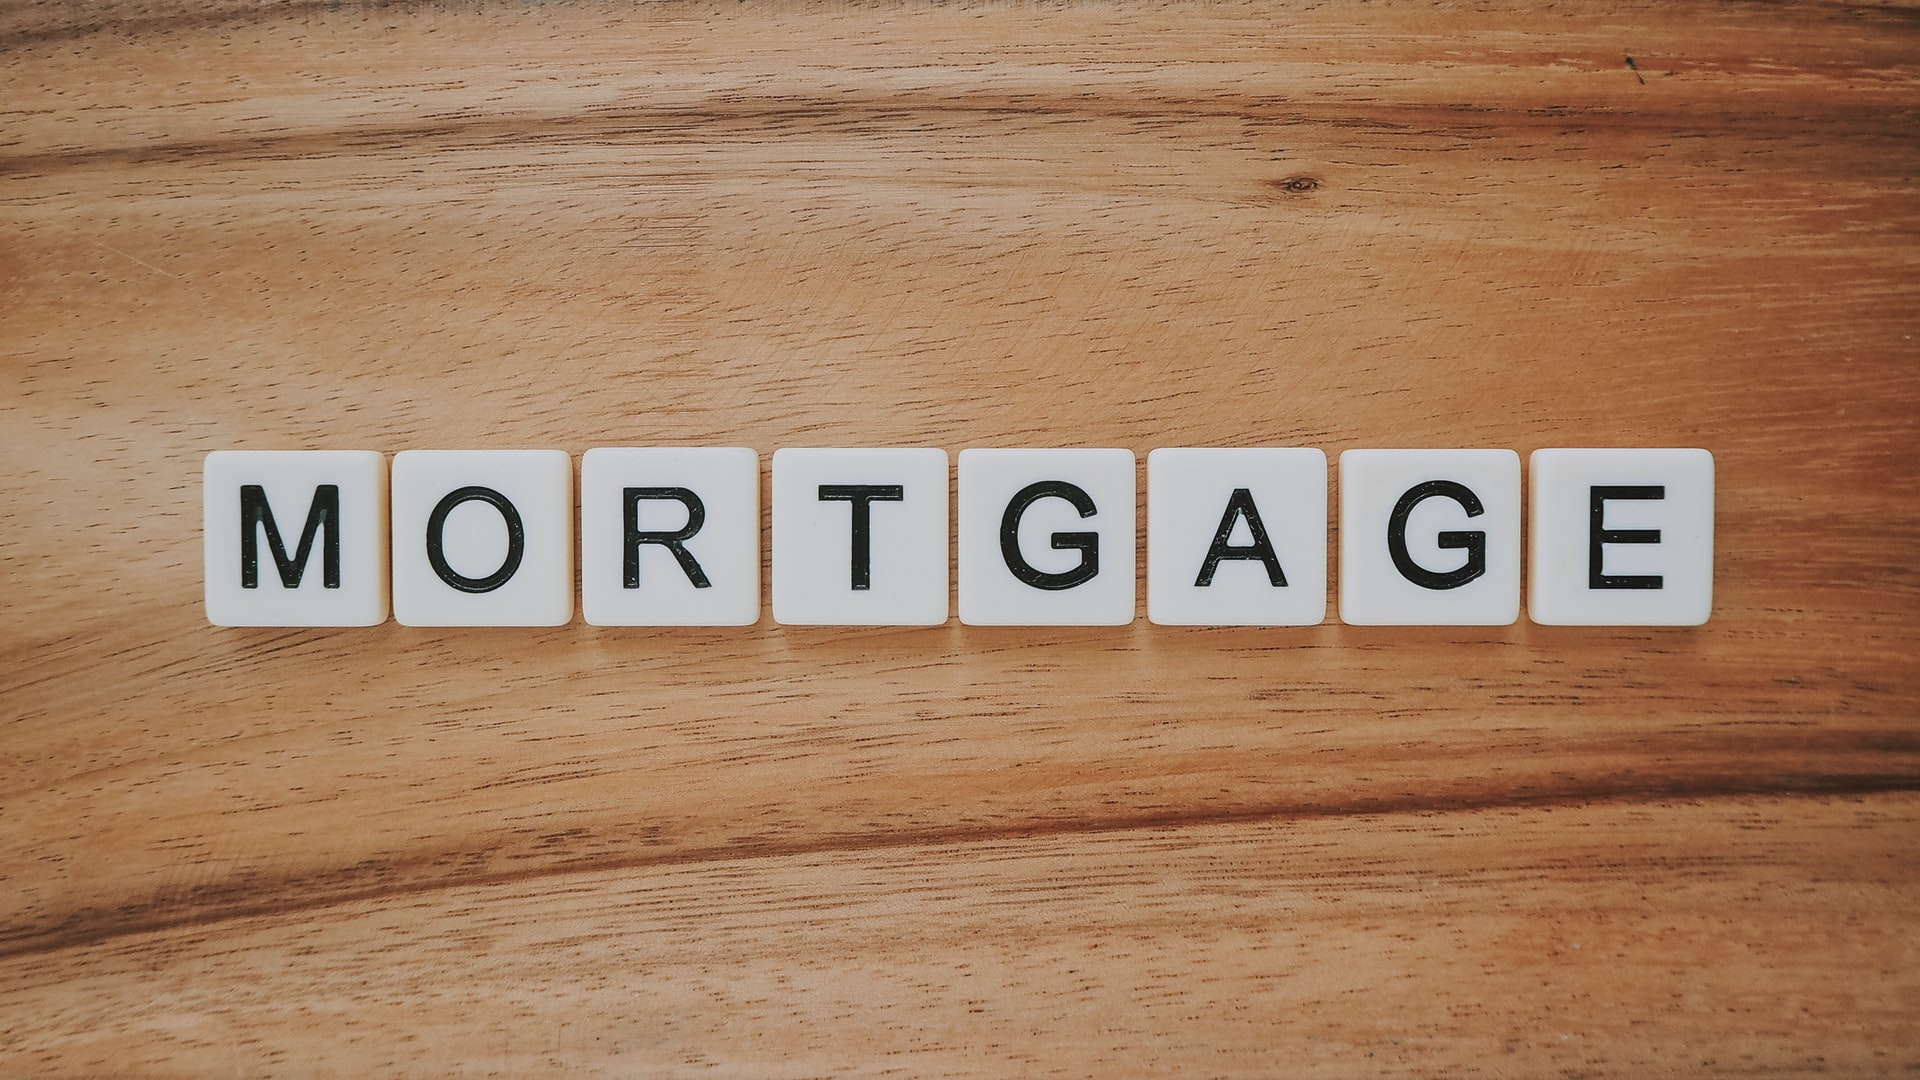 Scramble letters forming the word  Mortgage.